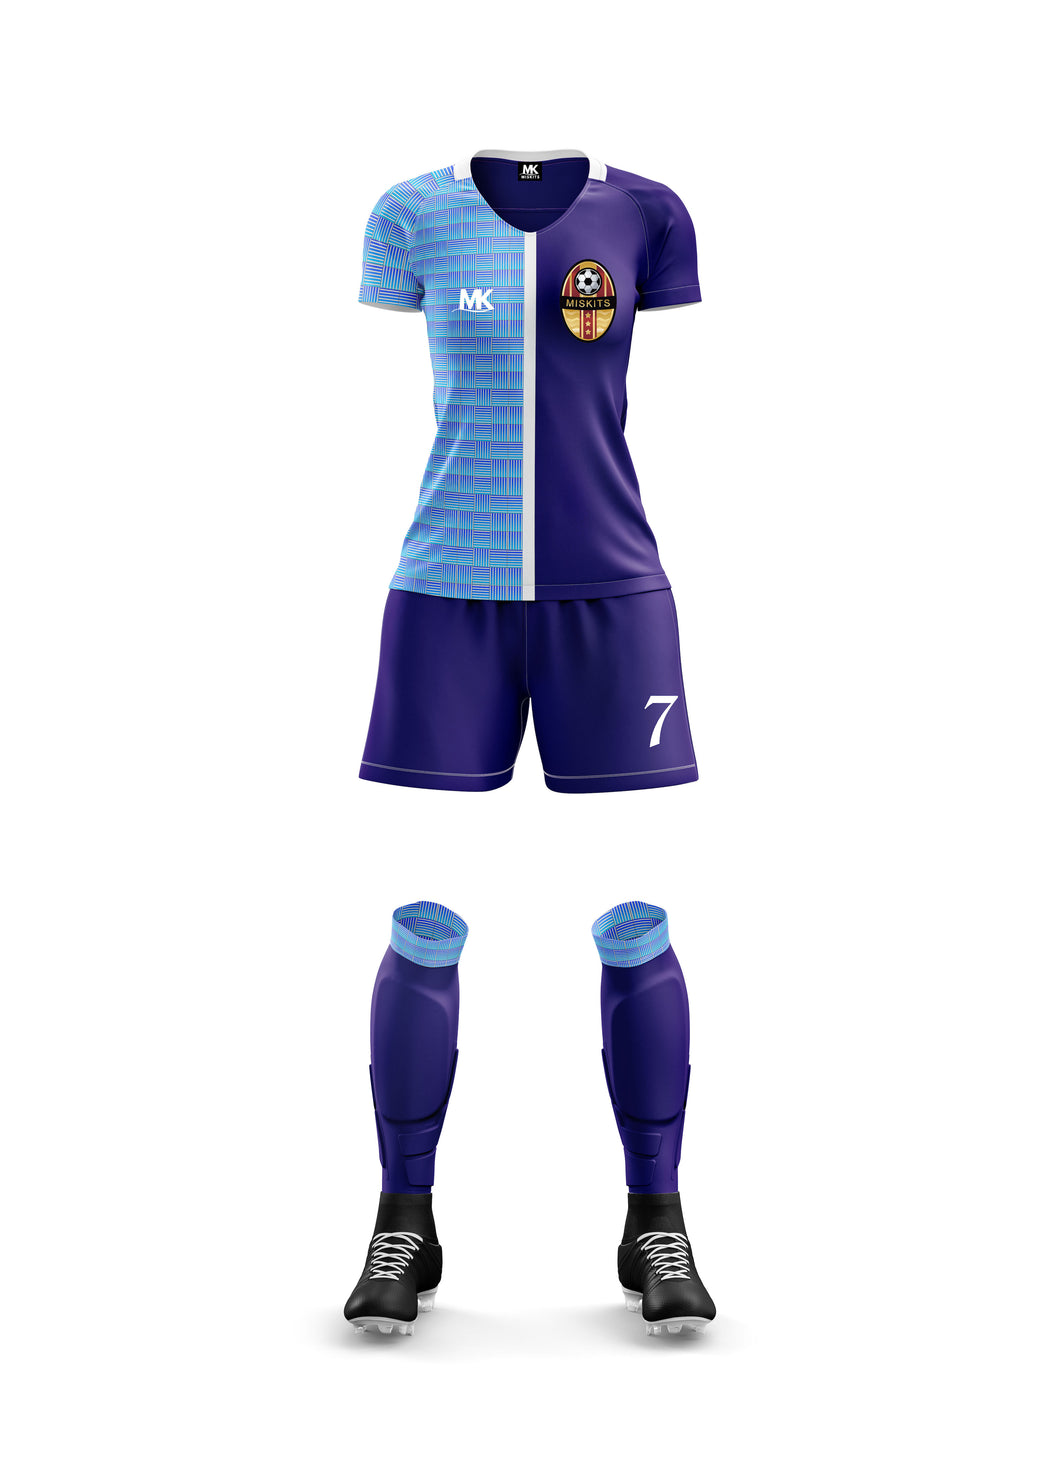 Blue women's football kit